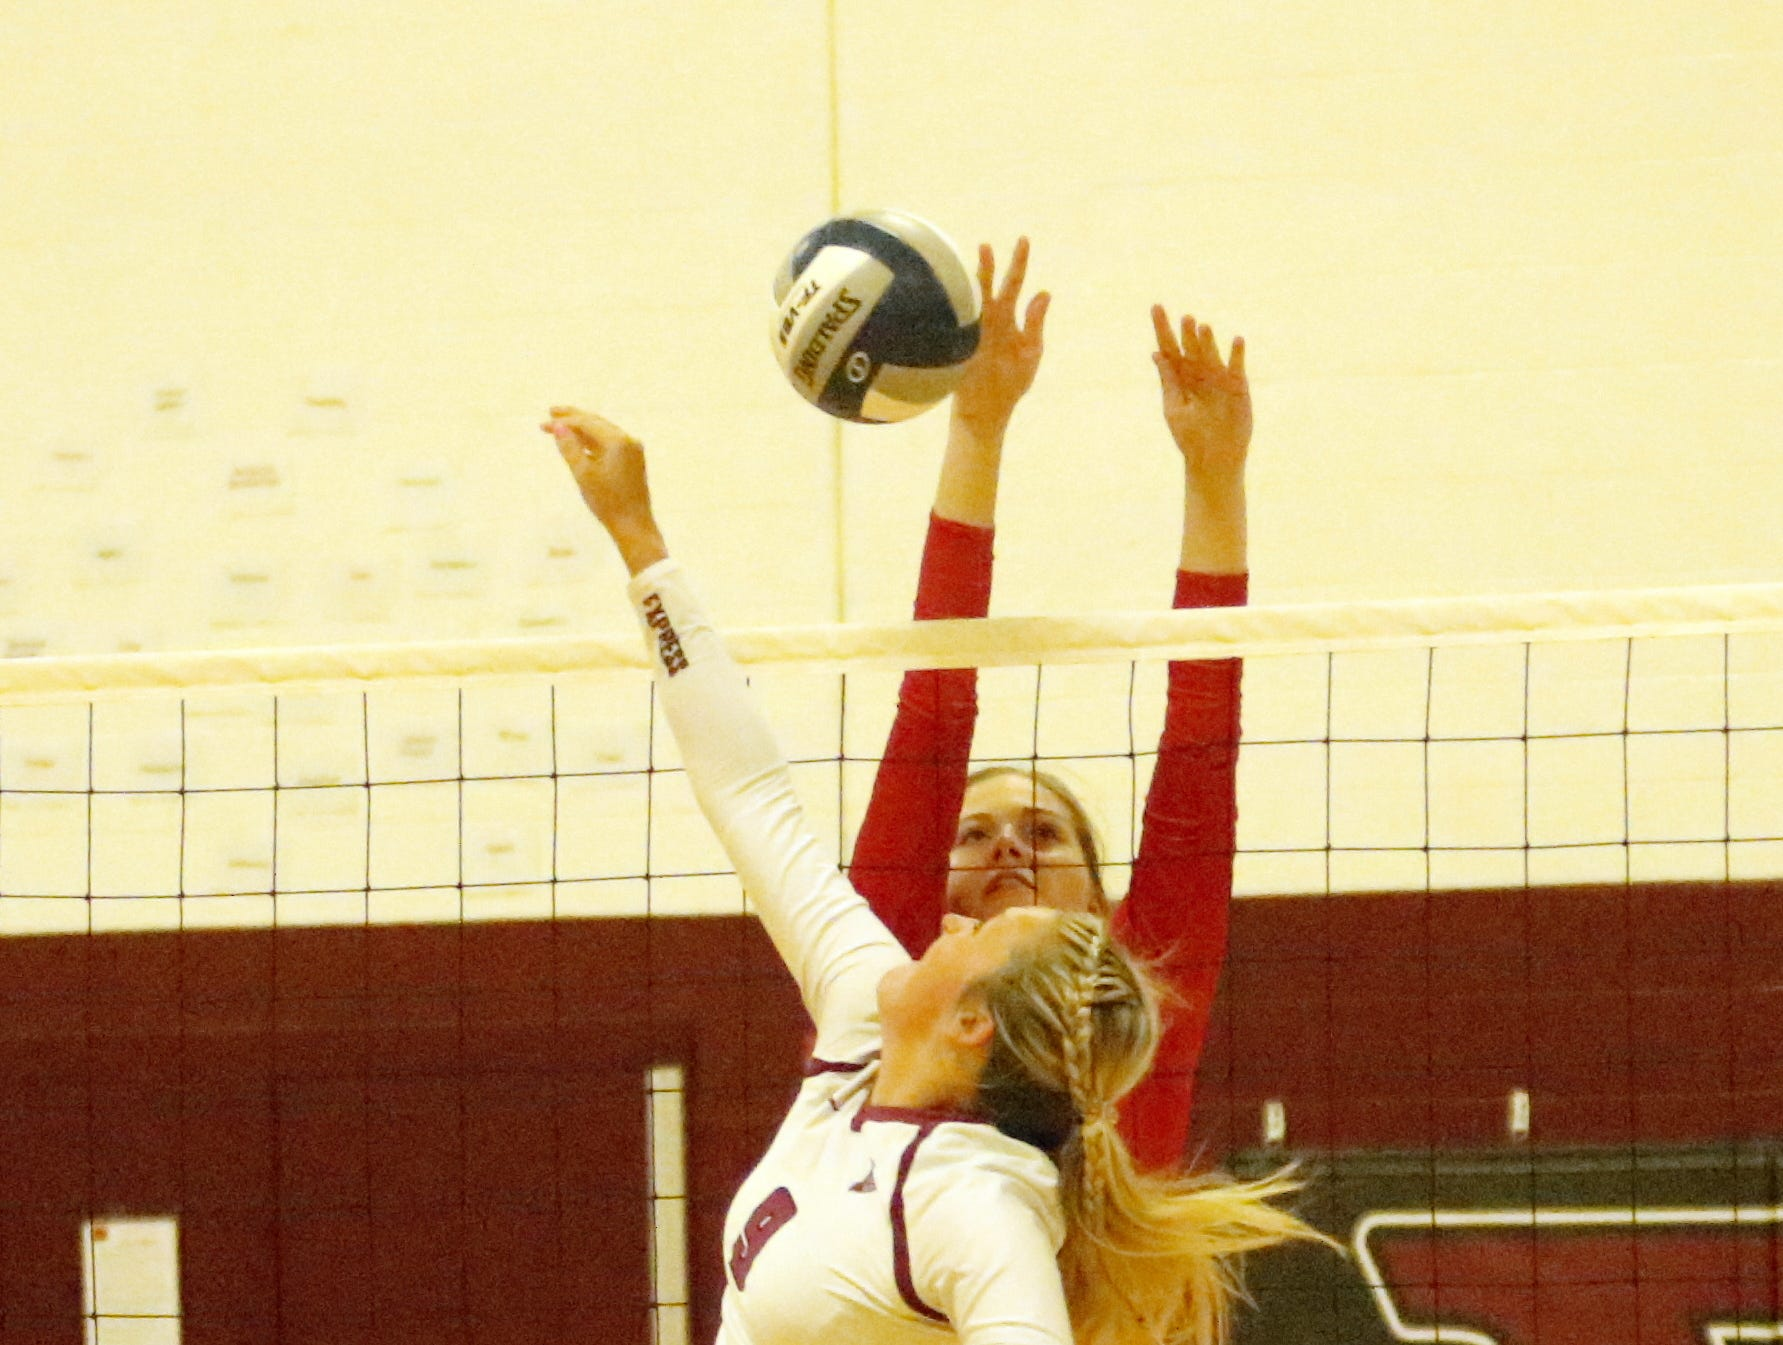 Sara Zepkowski of Owego goes up for a block against Mackenna Bruner of Elmira on Sept. 11, 2018 at Elmira High School.